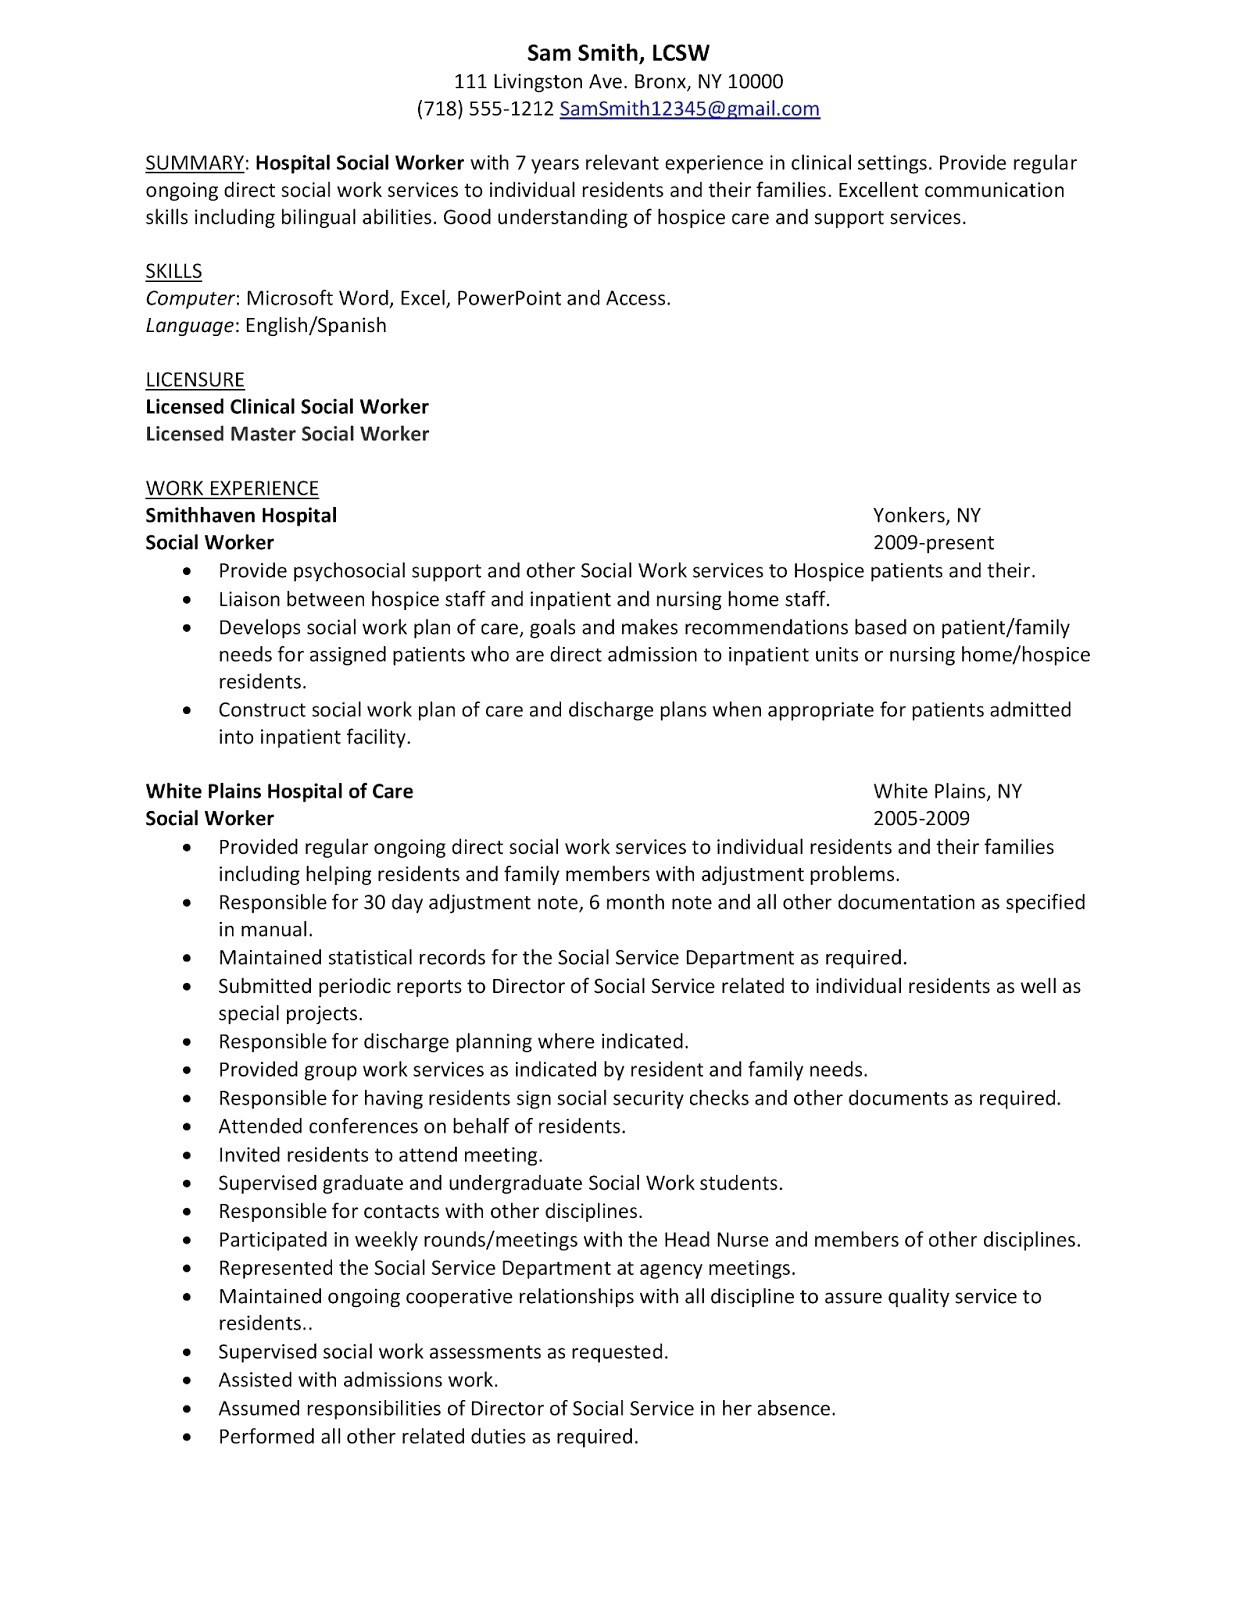 Accounting Resume Summary Examples - Accountant Resume Examples Inspirational Finance Resume 0d